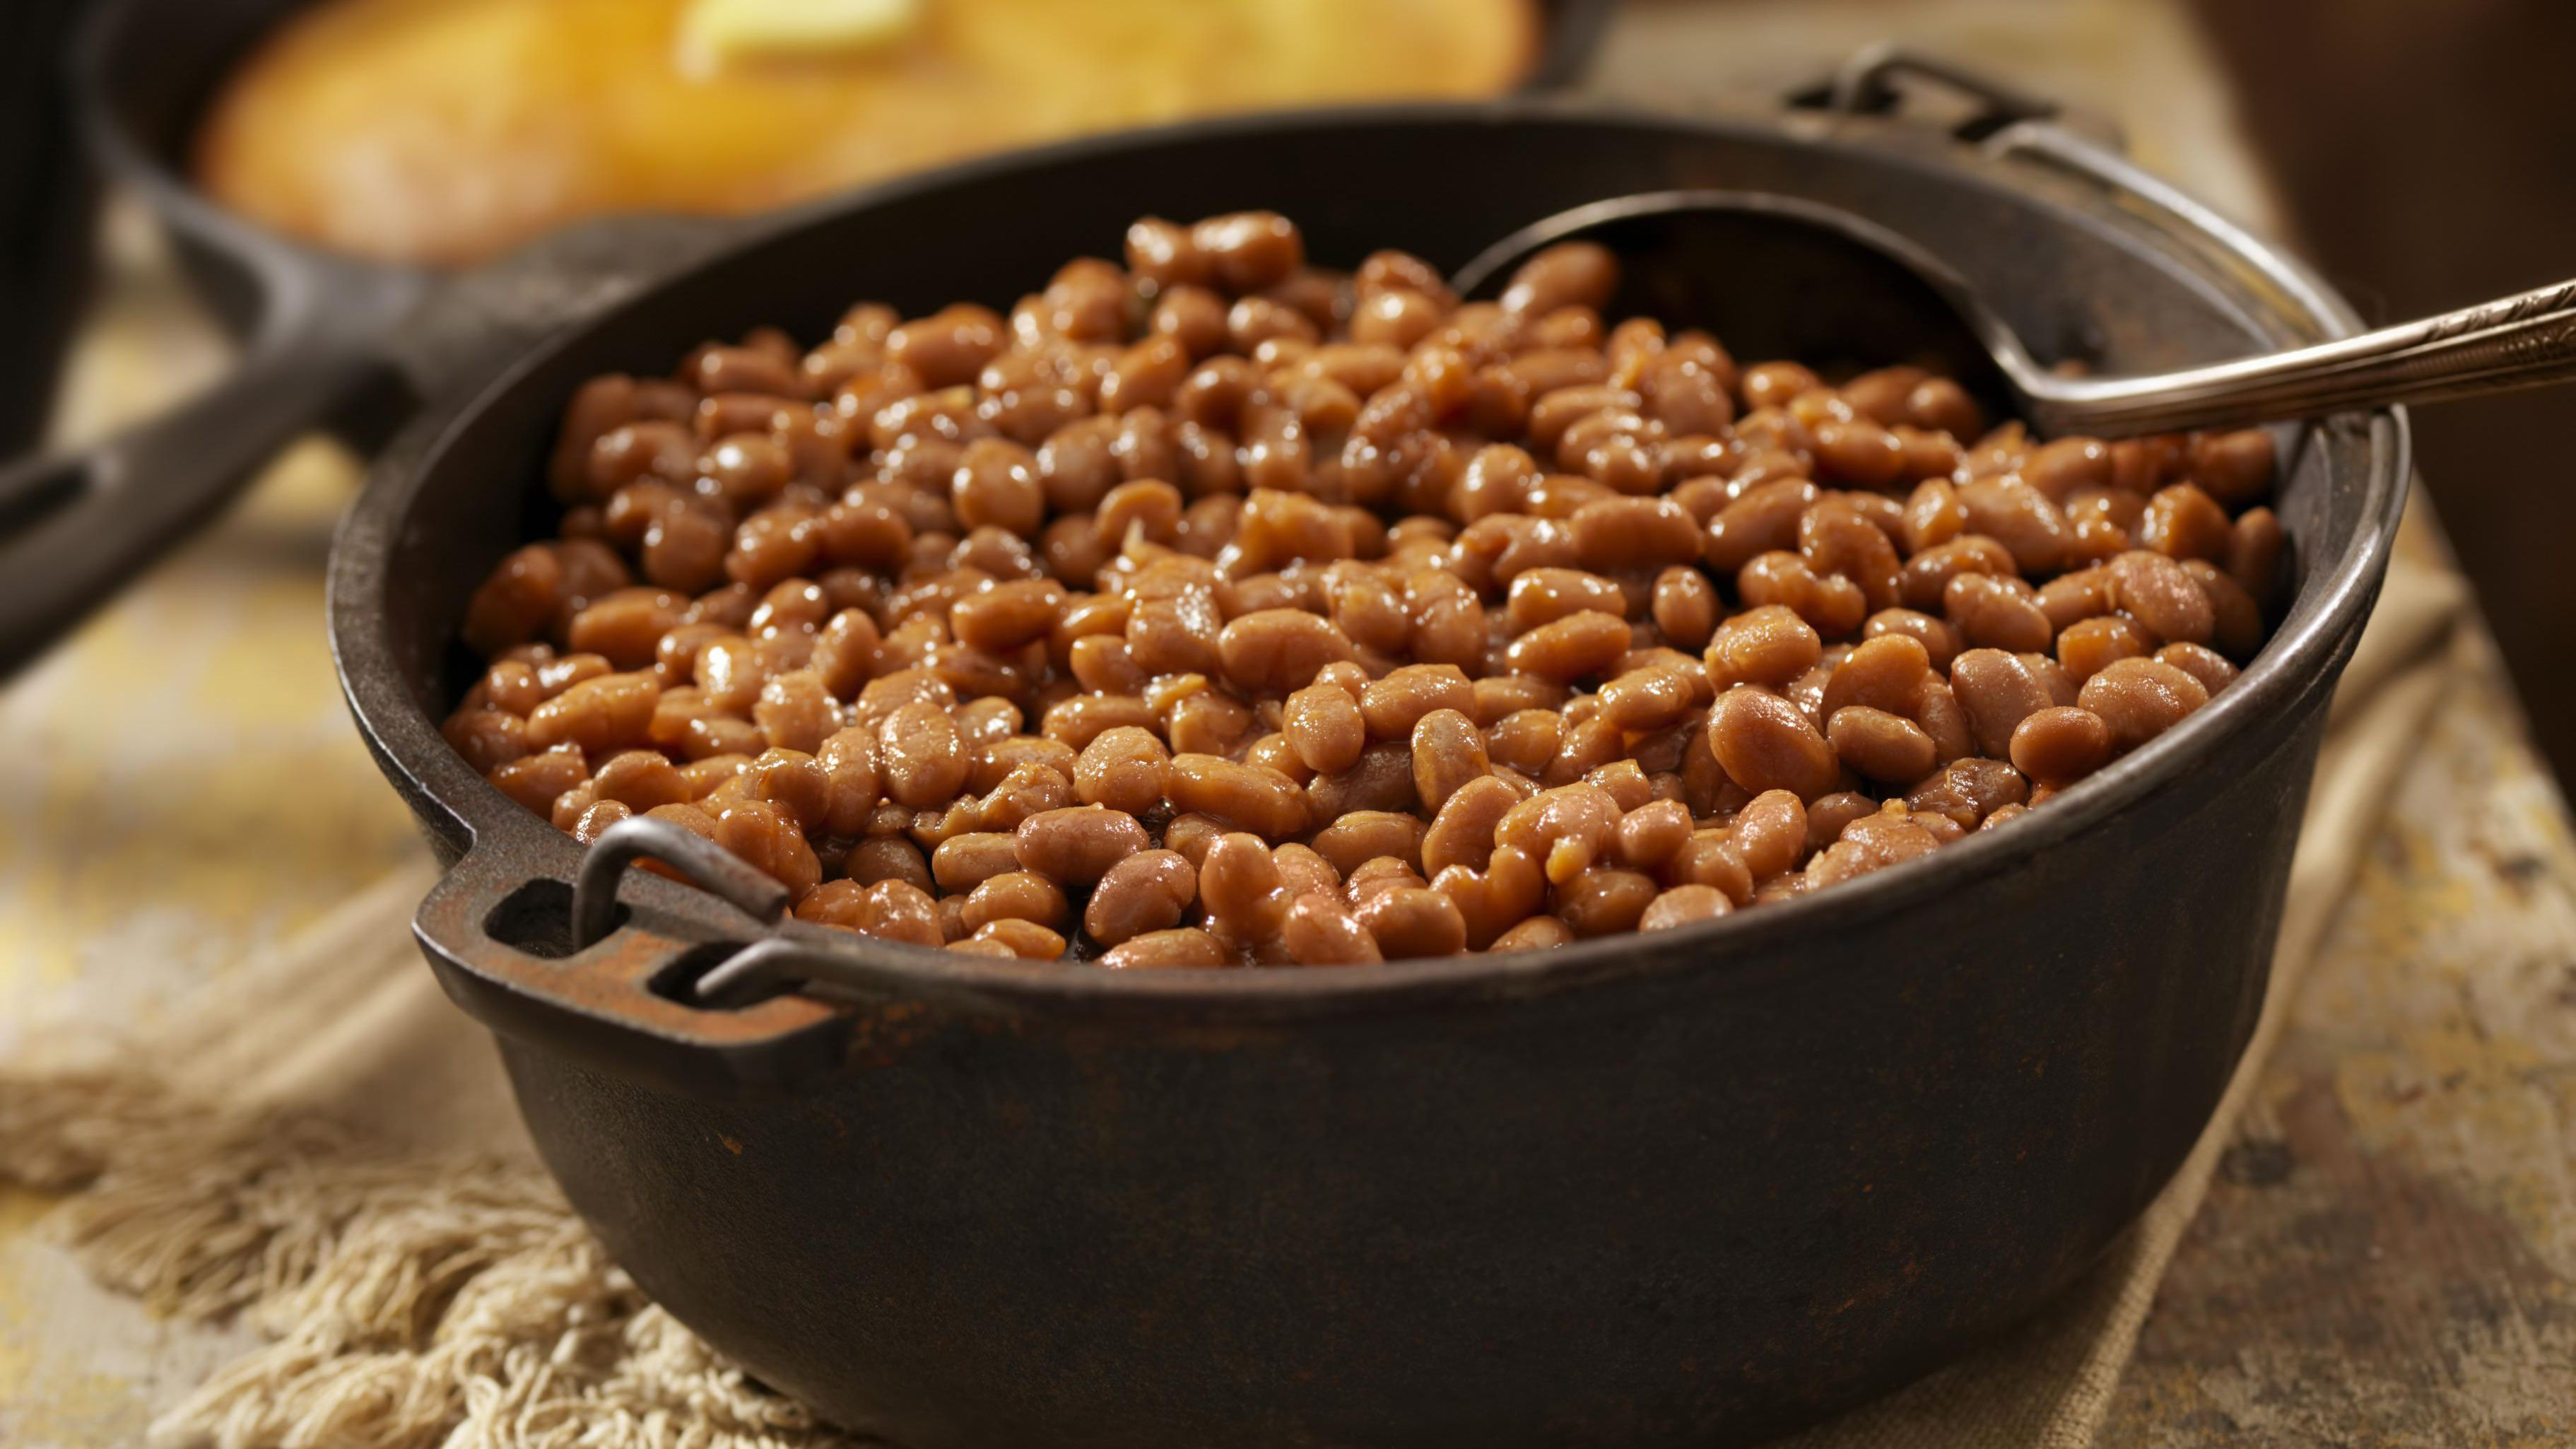 Why Do Beans Cause Intestinal Gas?